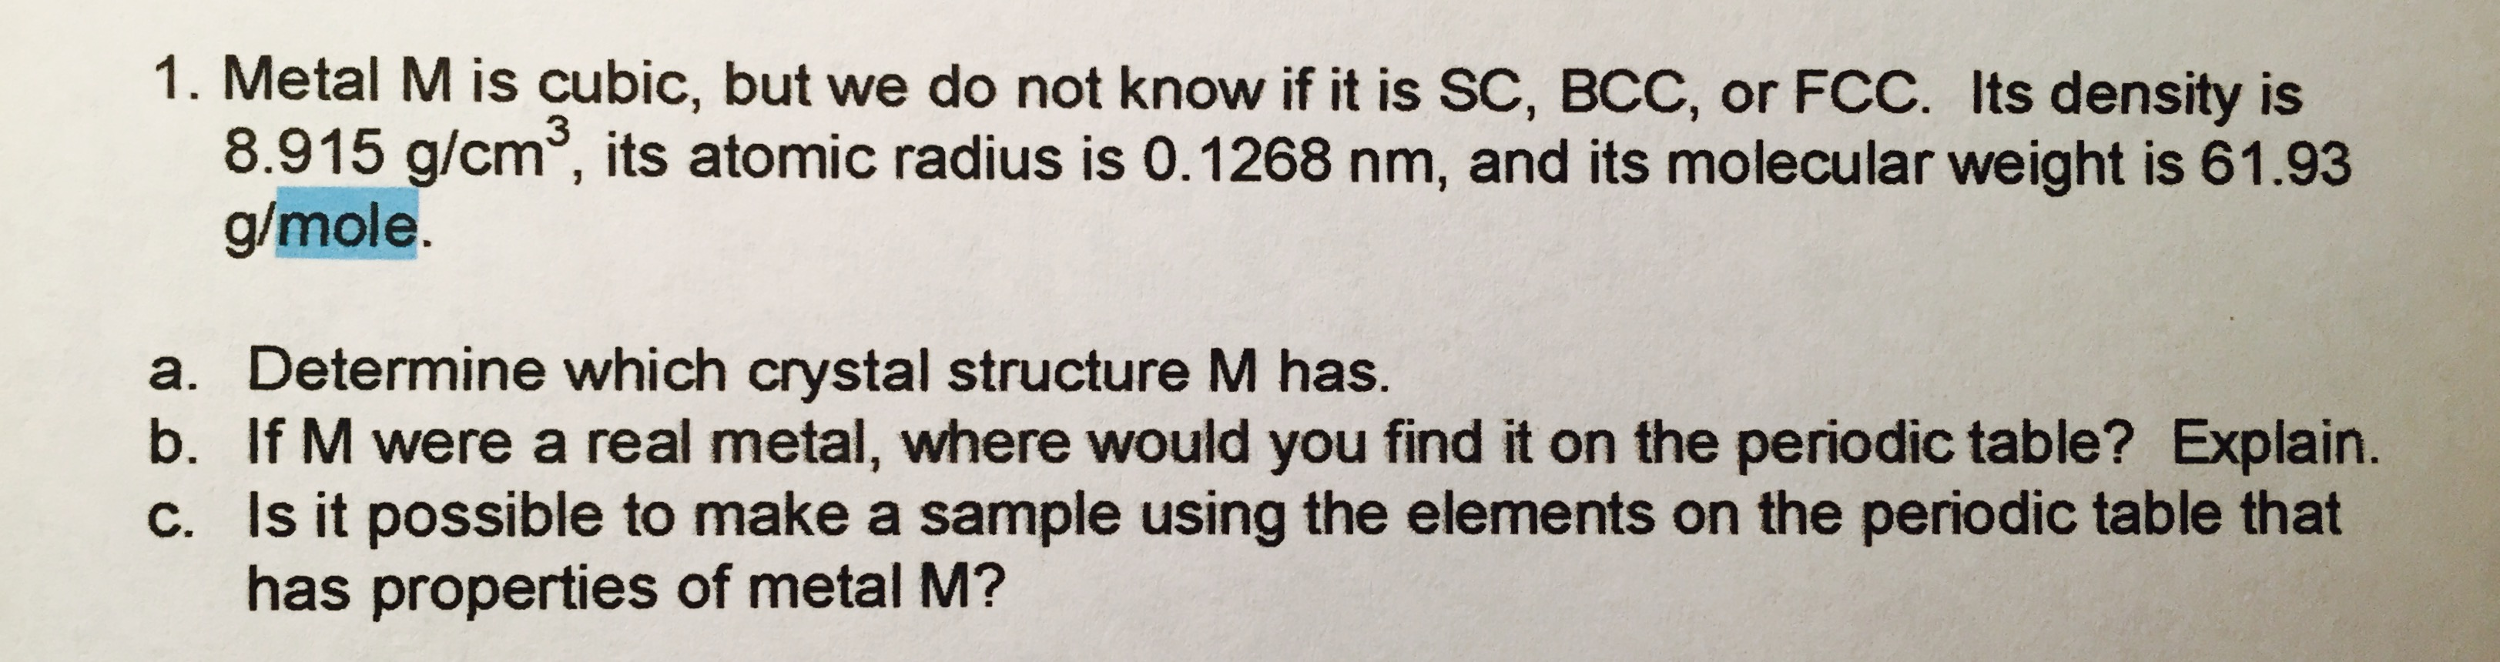 how to find atomic radius from density